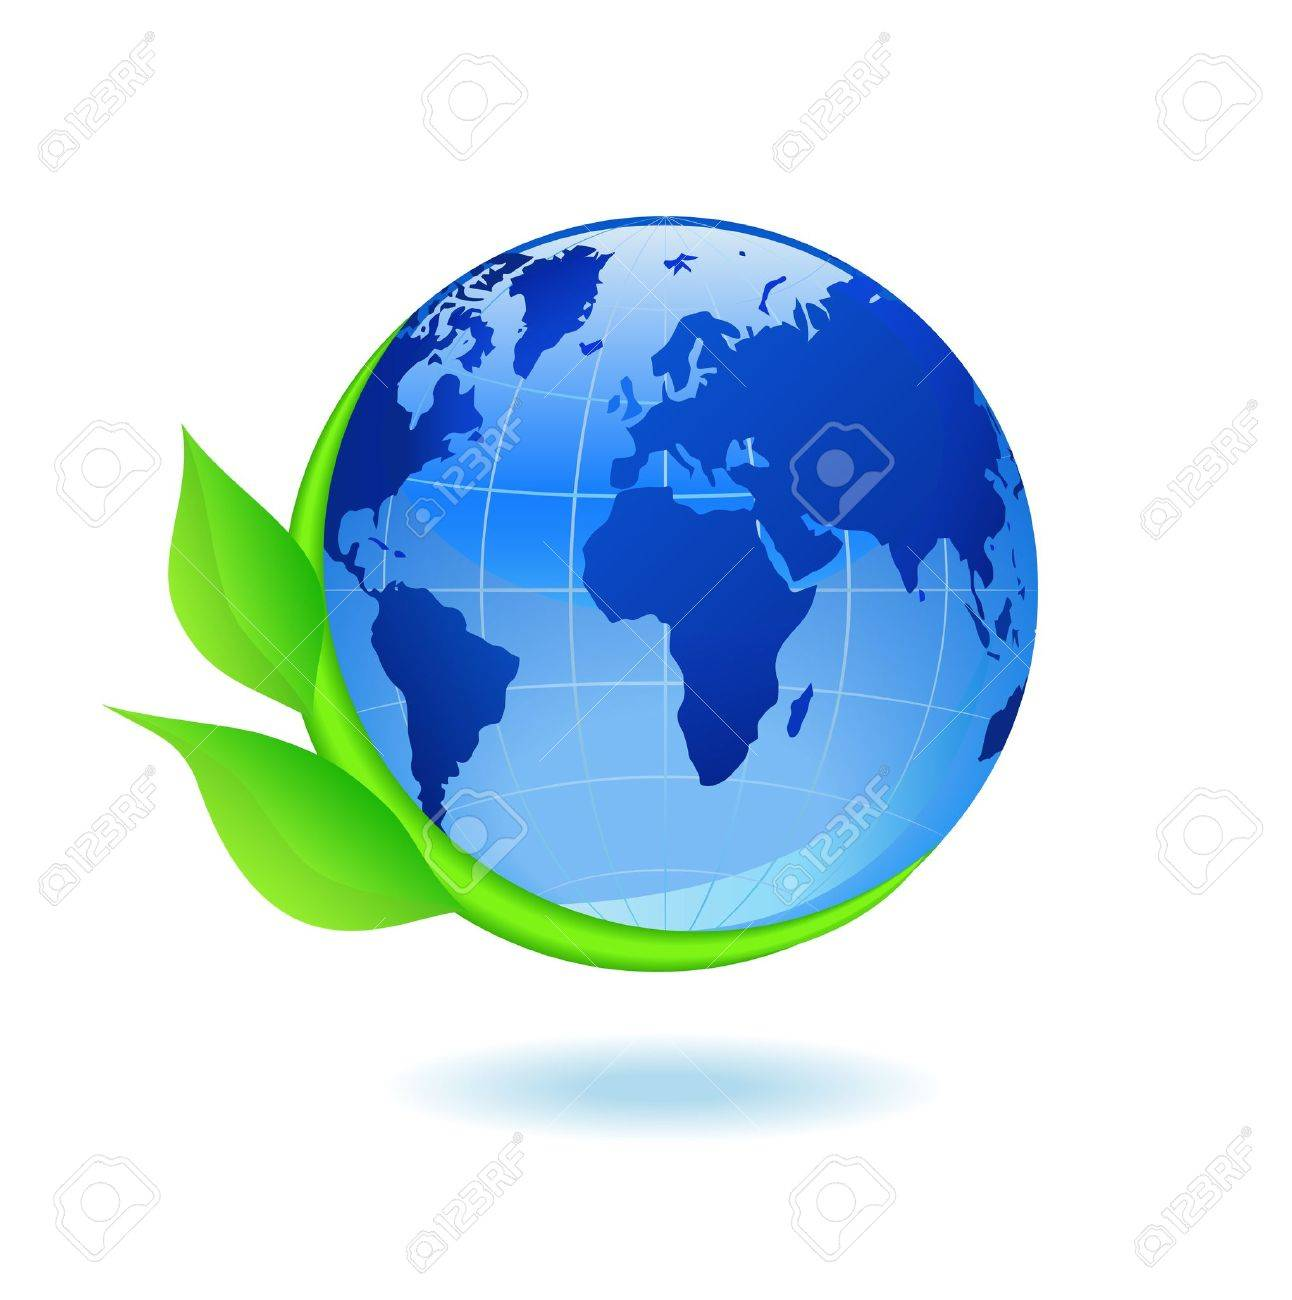 Globe and plant are shown in the picture. - 9804431